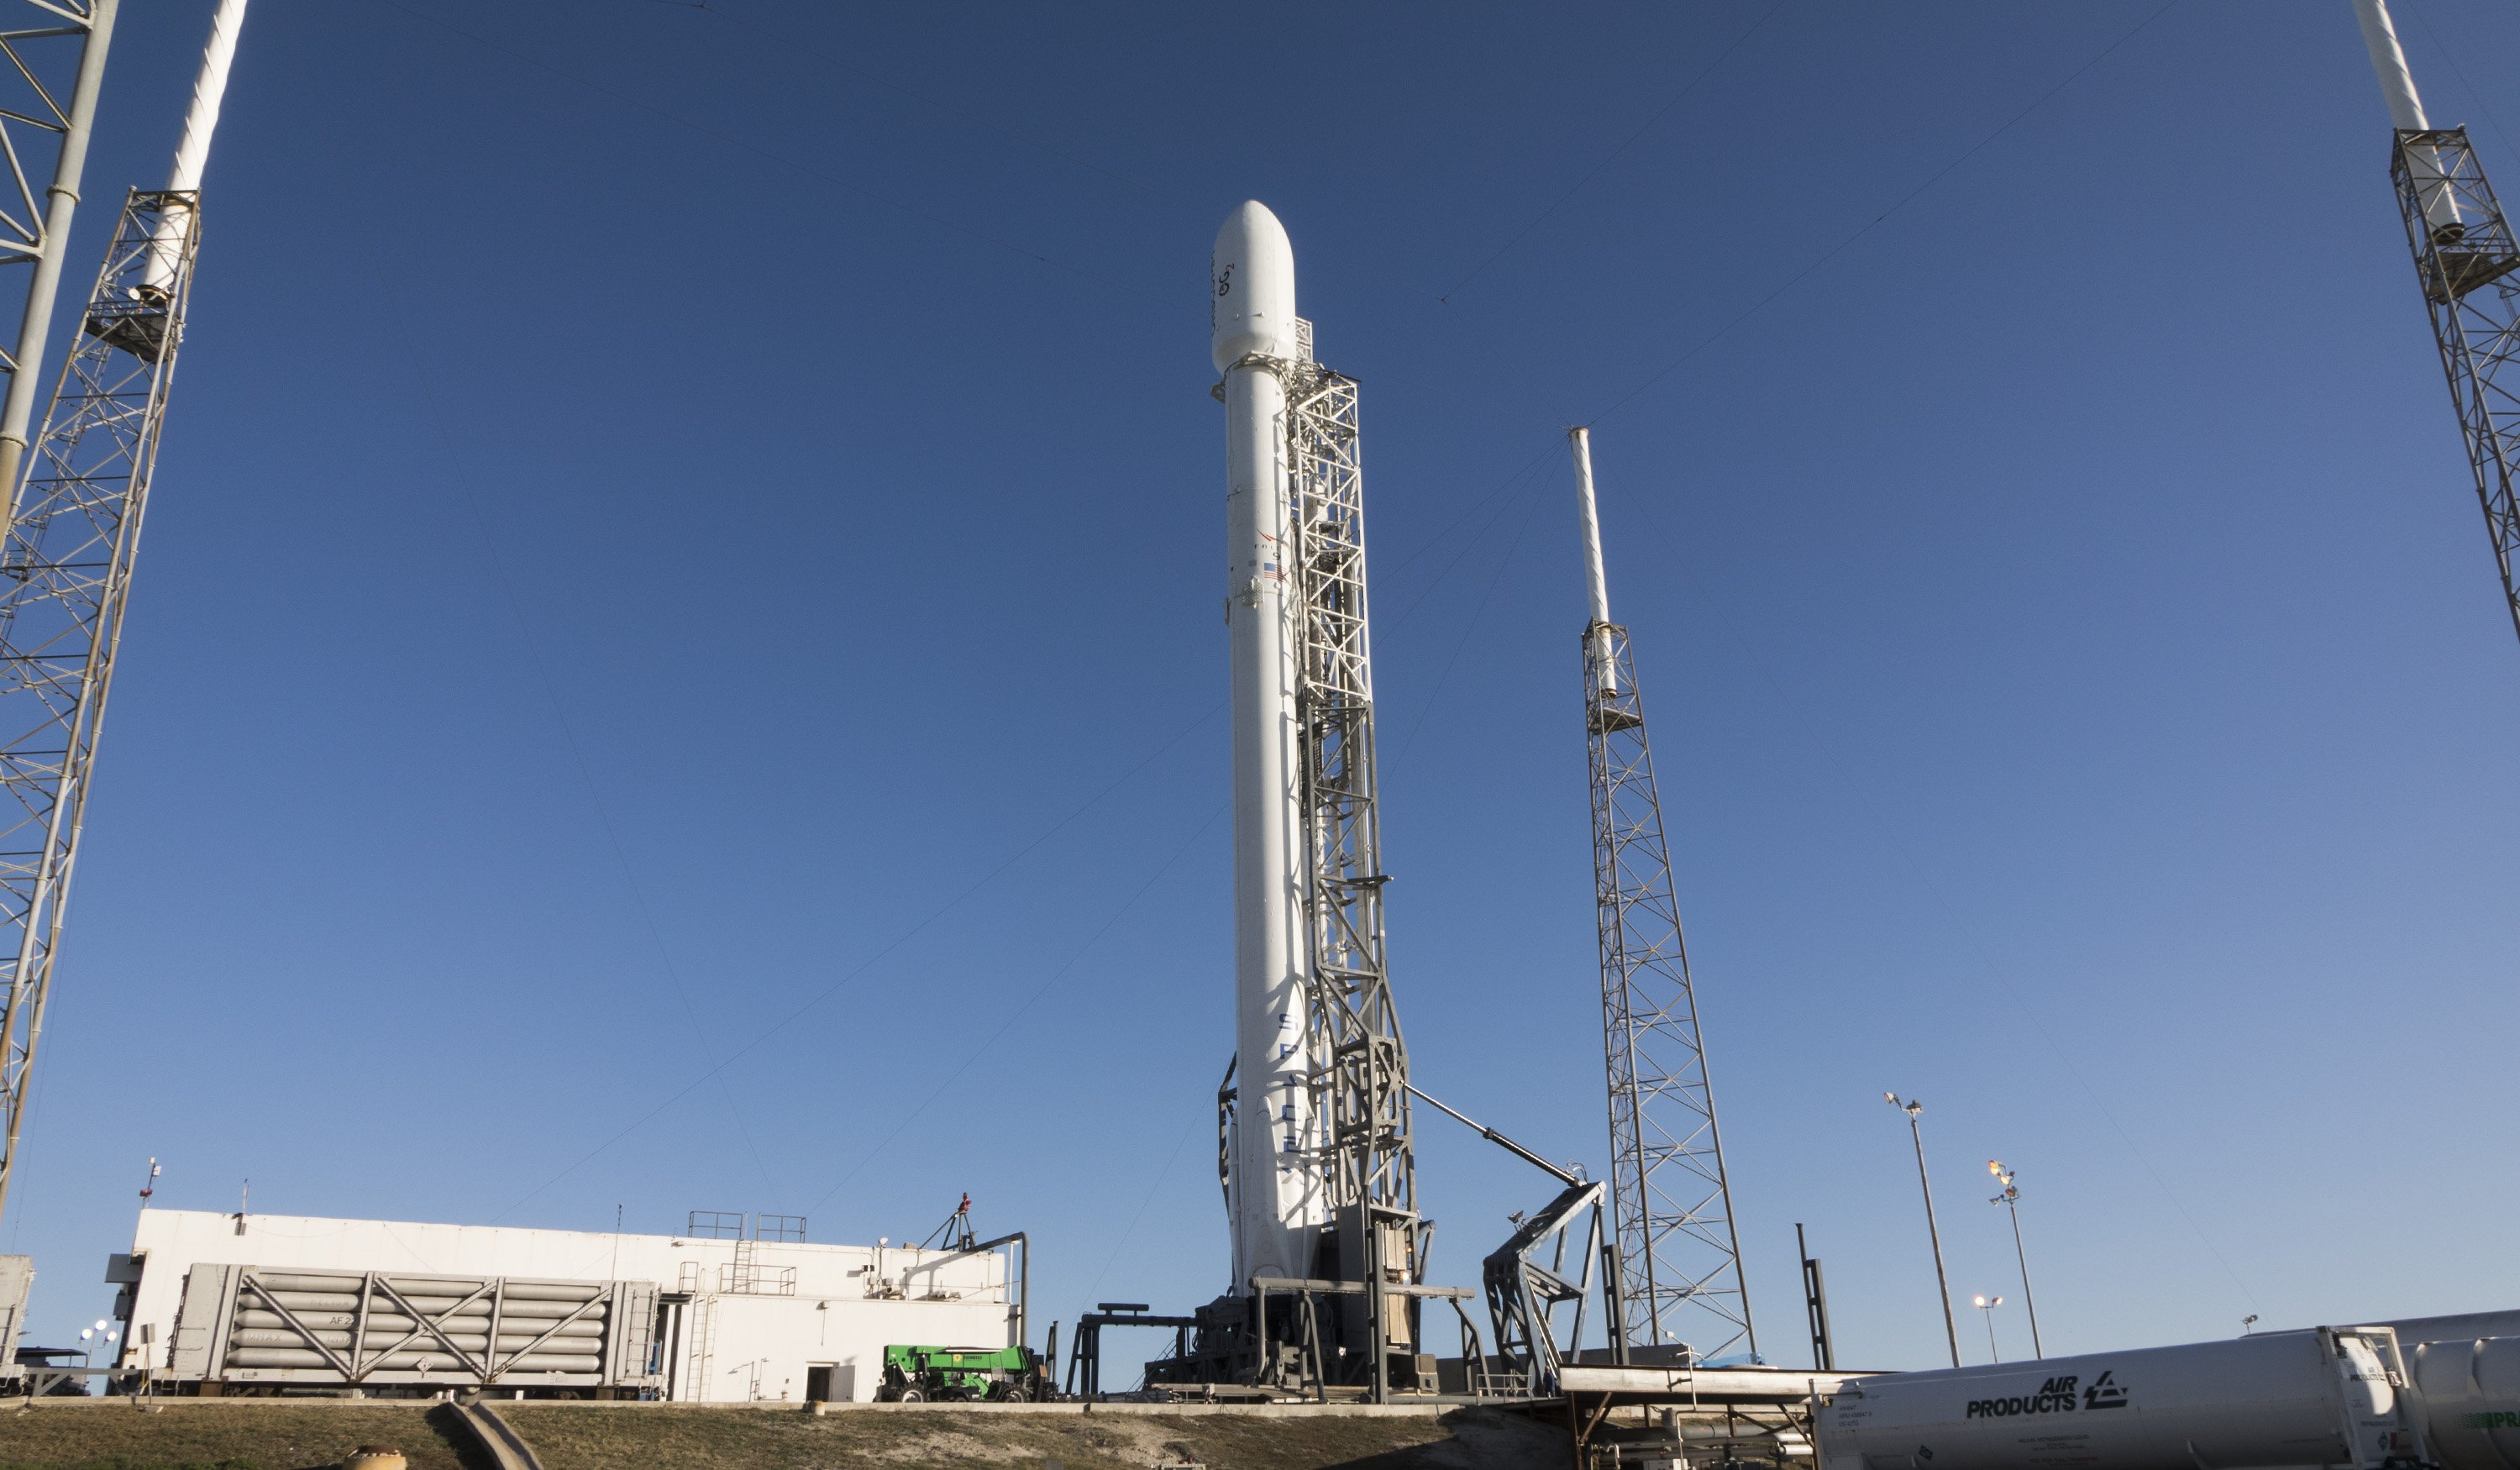 SpaceX's Falcon 9 rocket, standing 229 feet tall, on its Cape Canaveral launch pad earlier this week. Credit: SpaceX